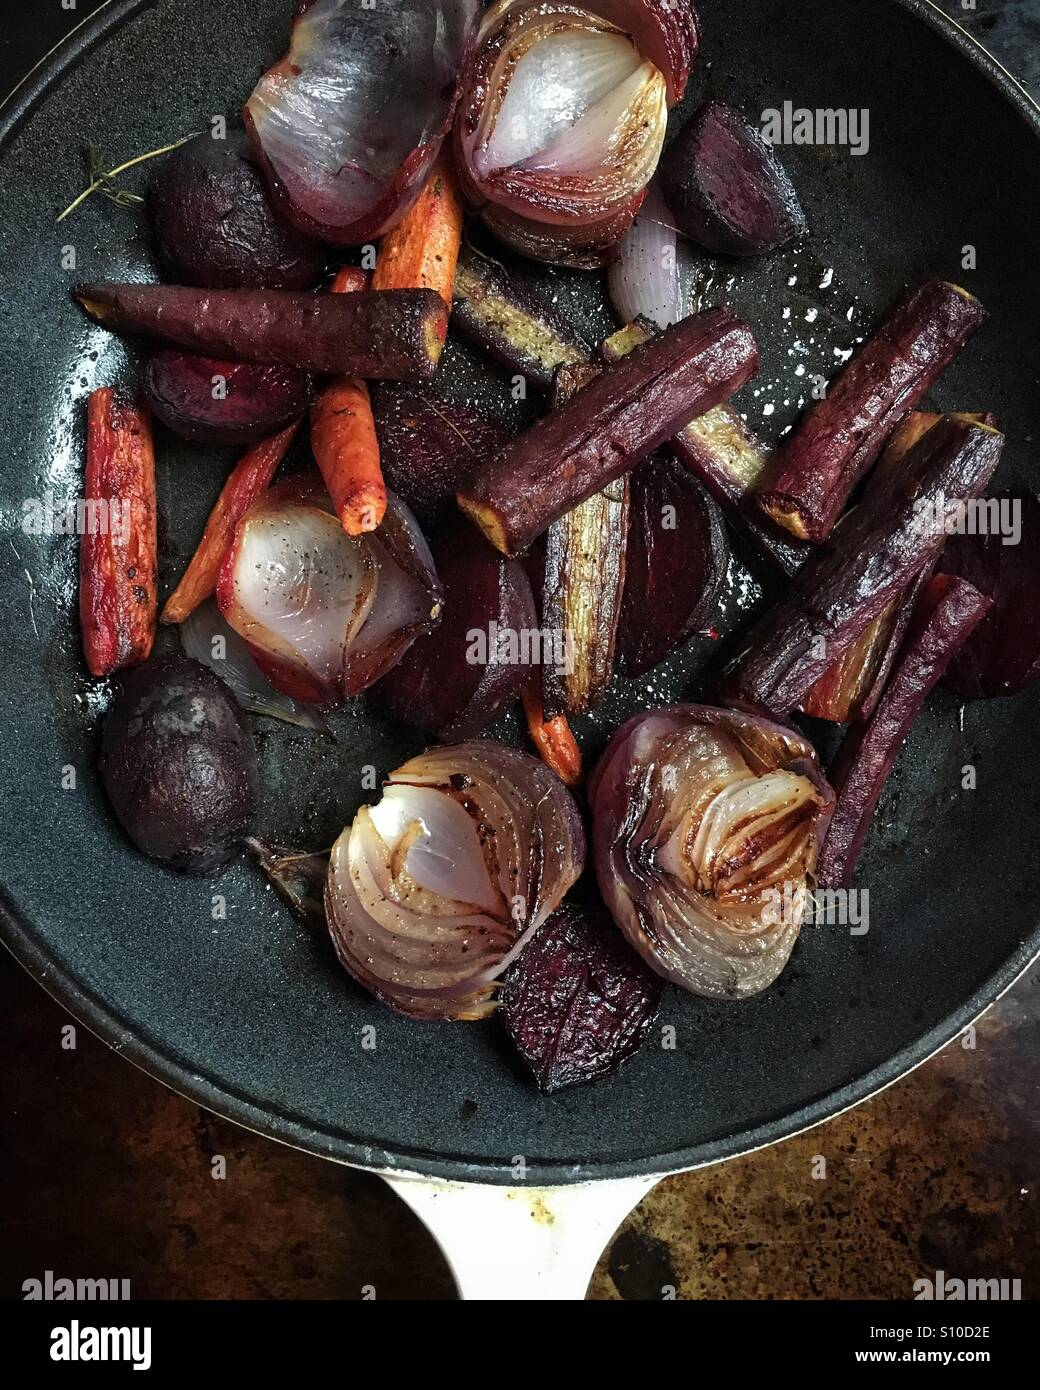 Pan roasted beet root, onions and carrots Stock Photo